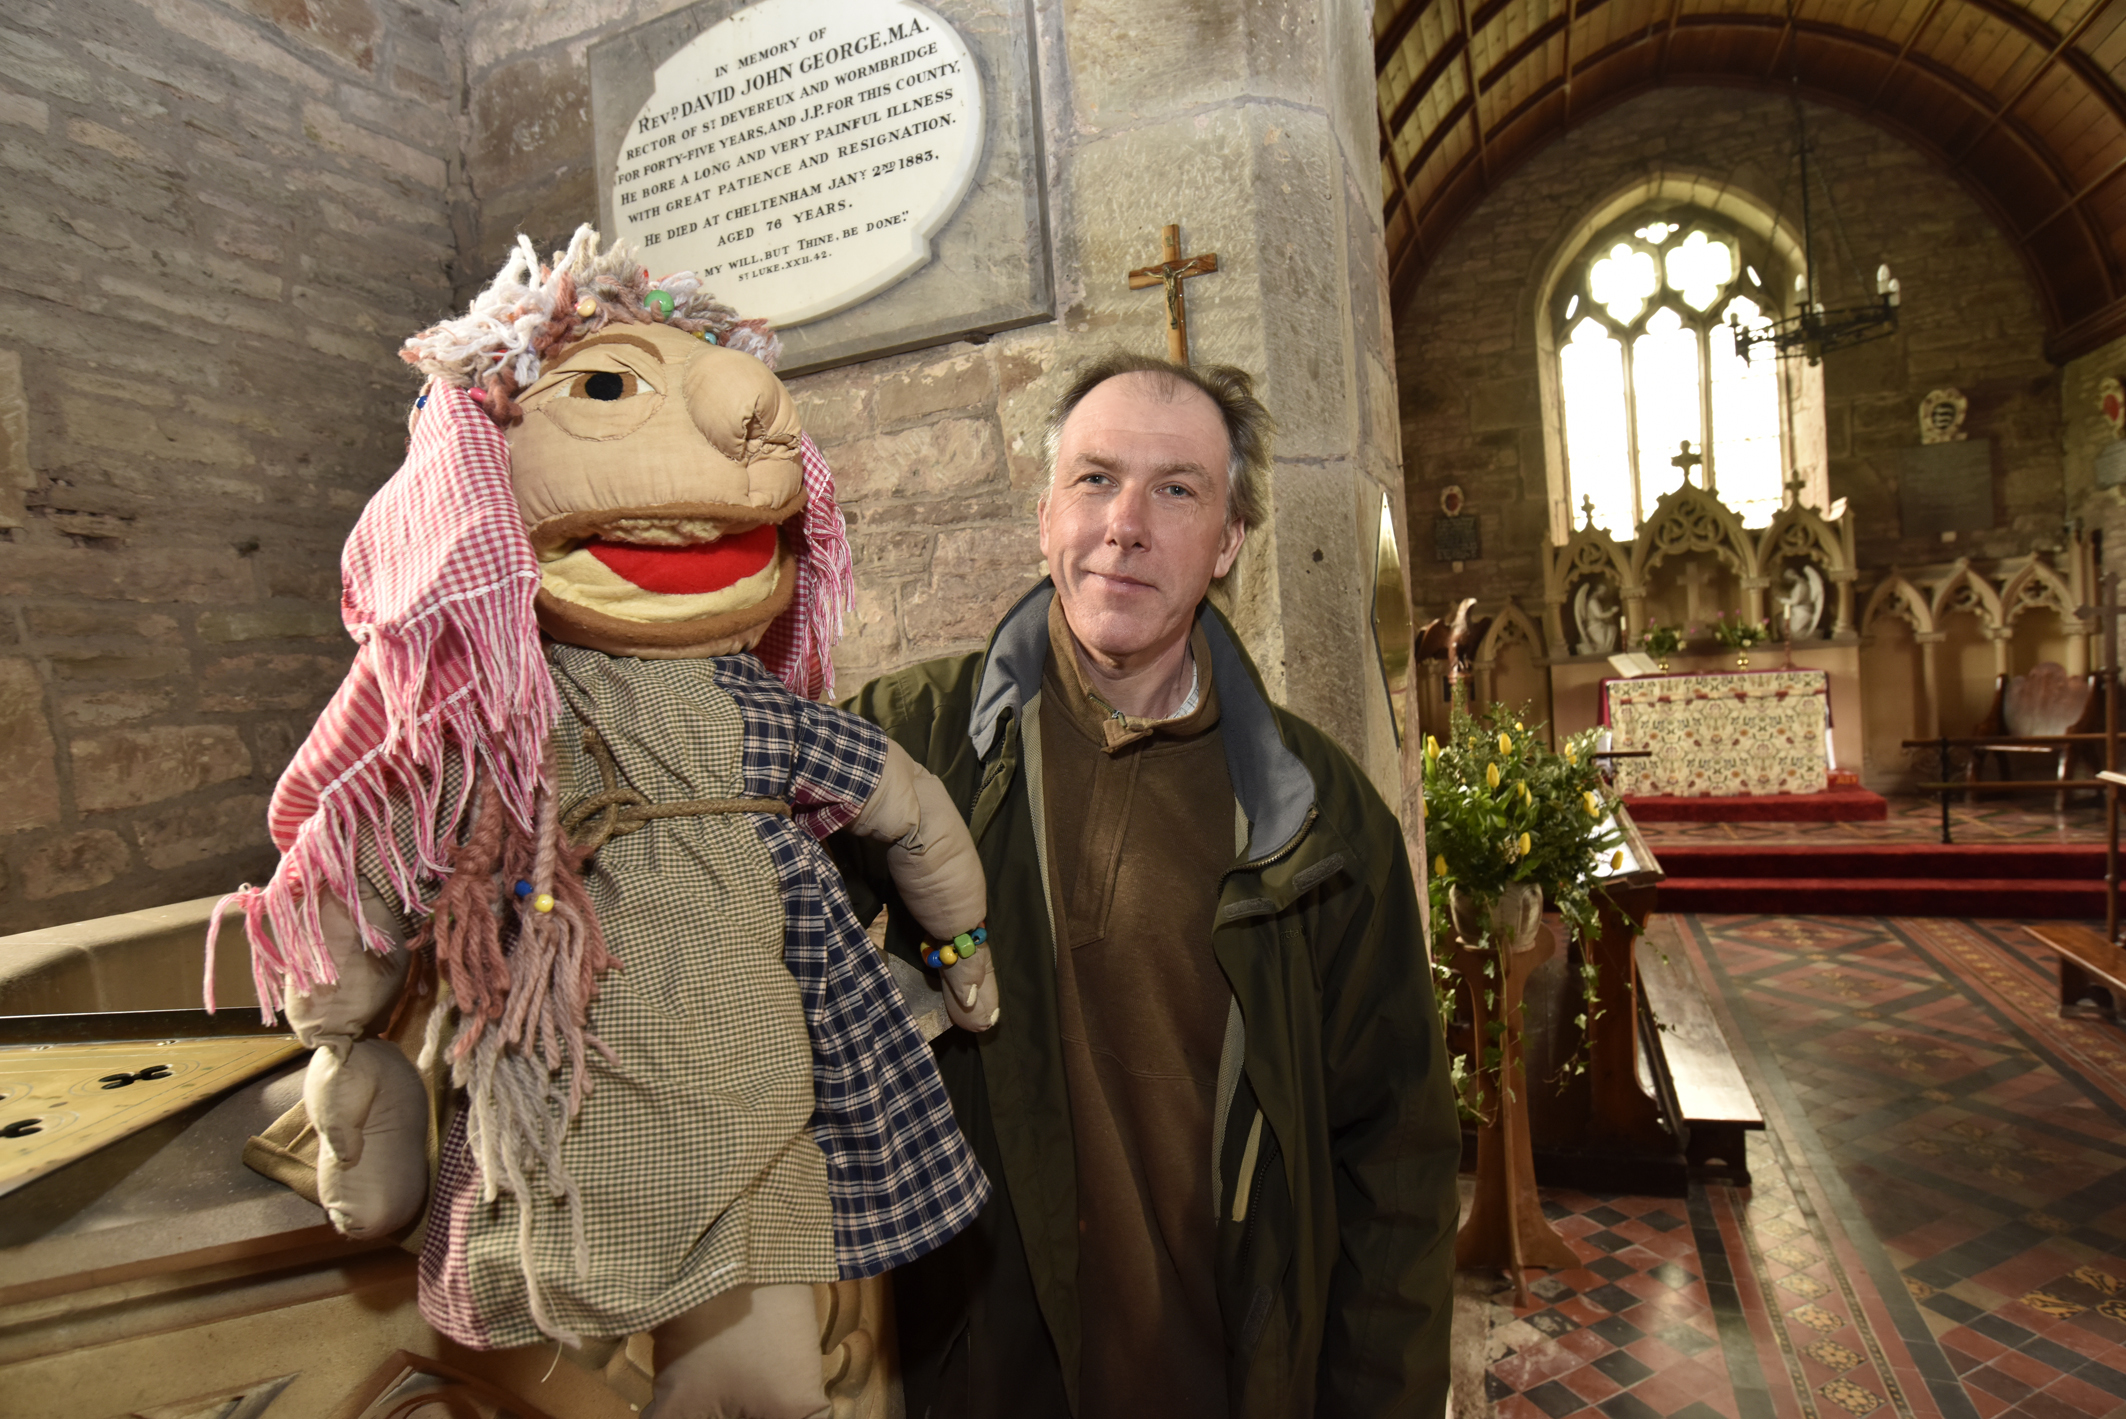 Chris Franks with his puppets describing the bible stories at St. Devereaux Church, Didley.ENDSPicture by David Griffiths